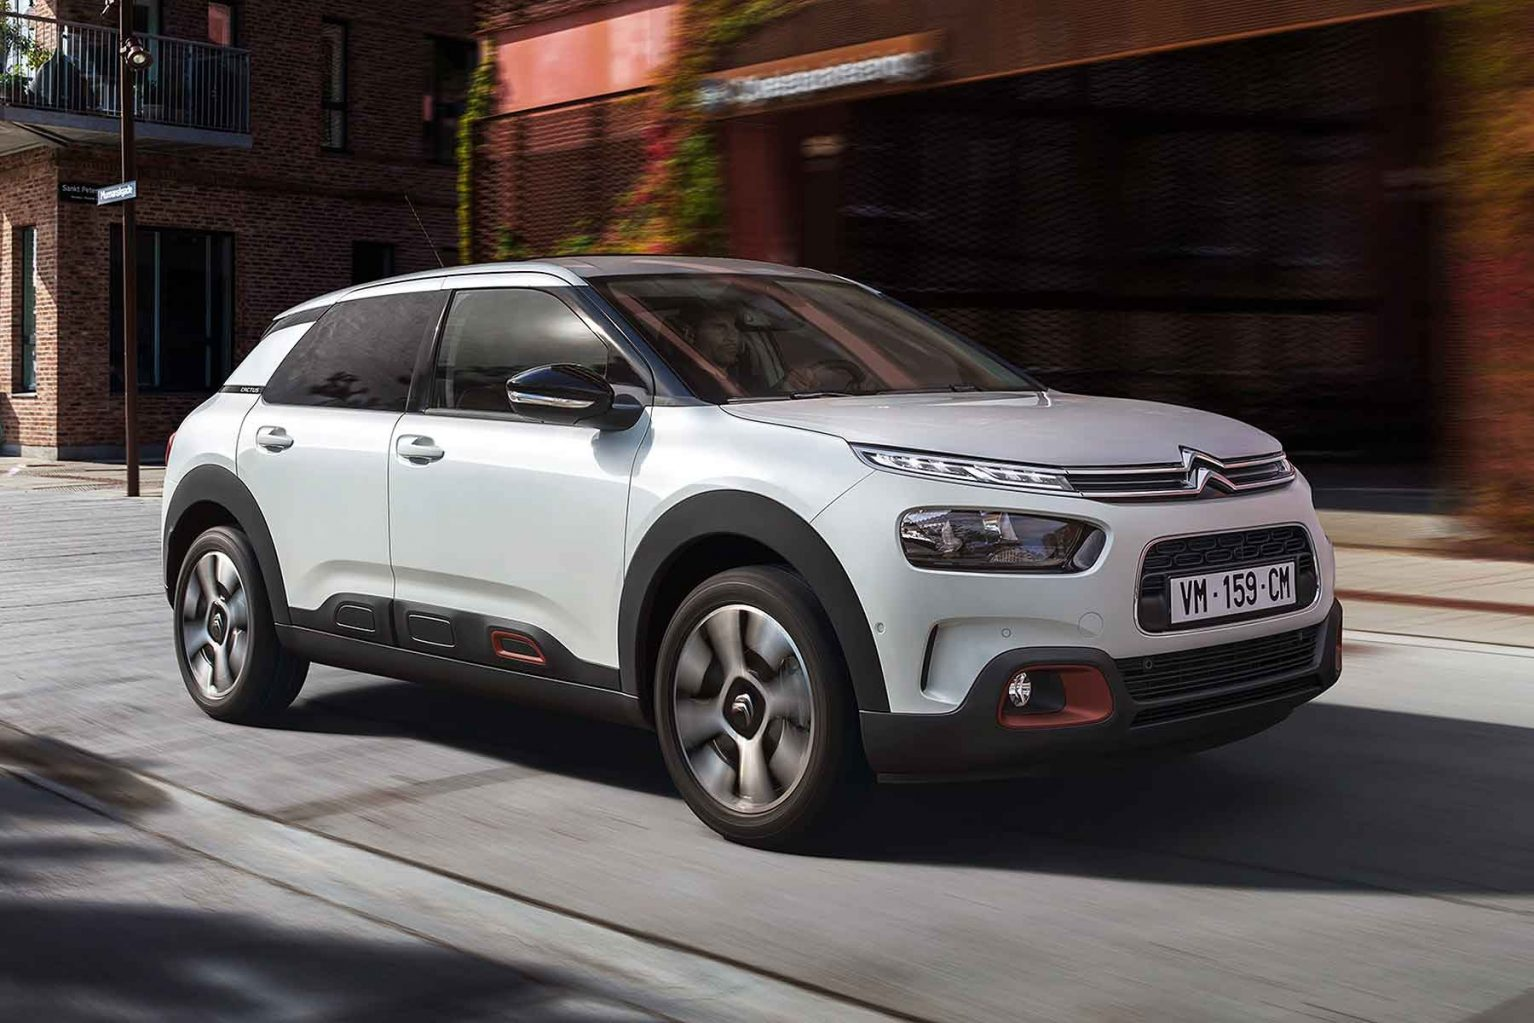 41 All New 2019 Citroen C4 New Review